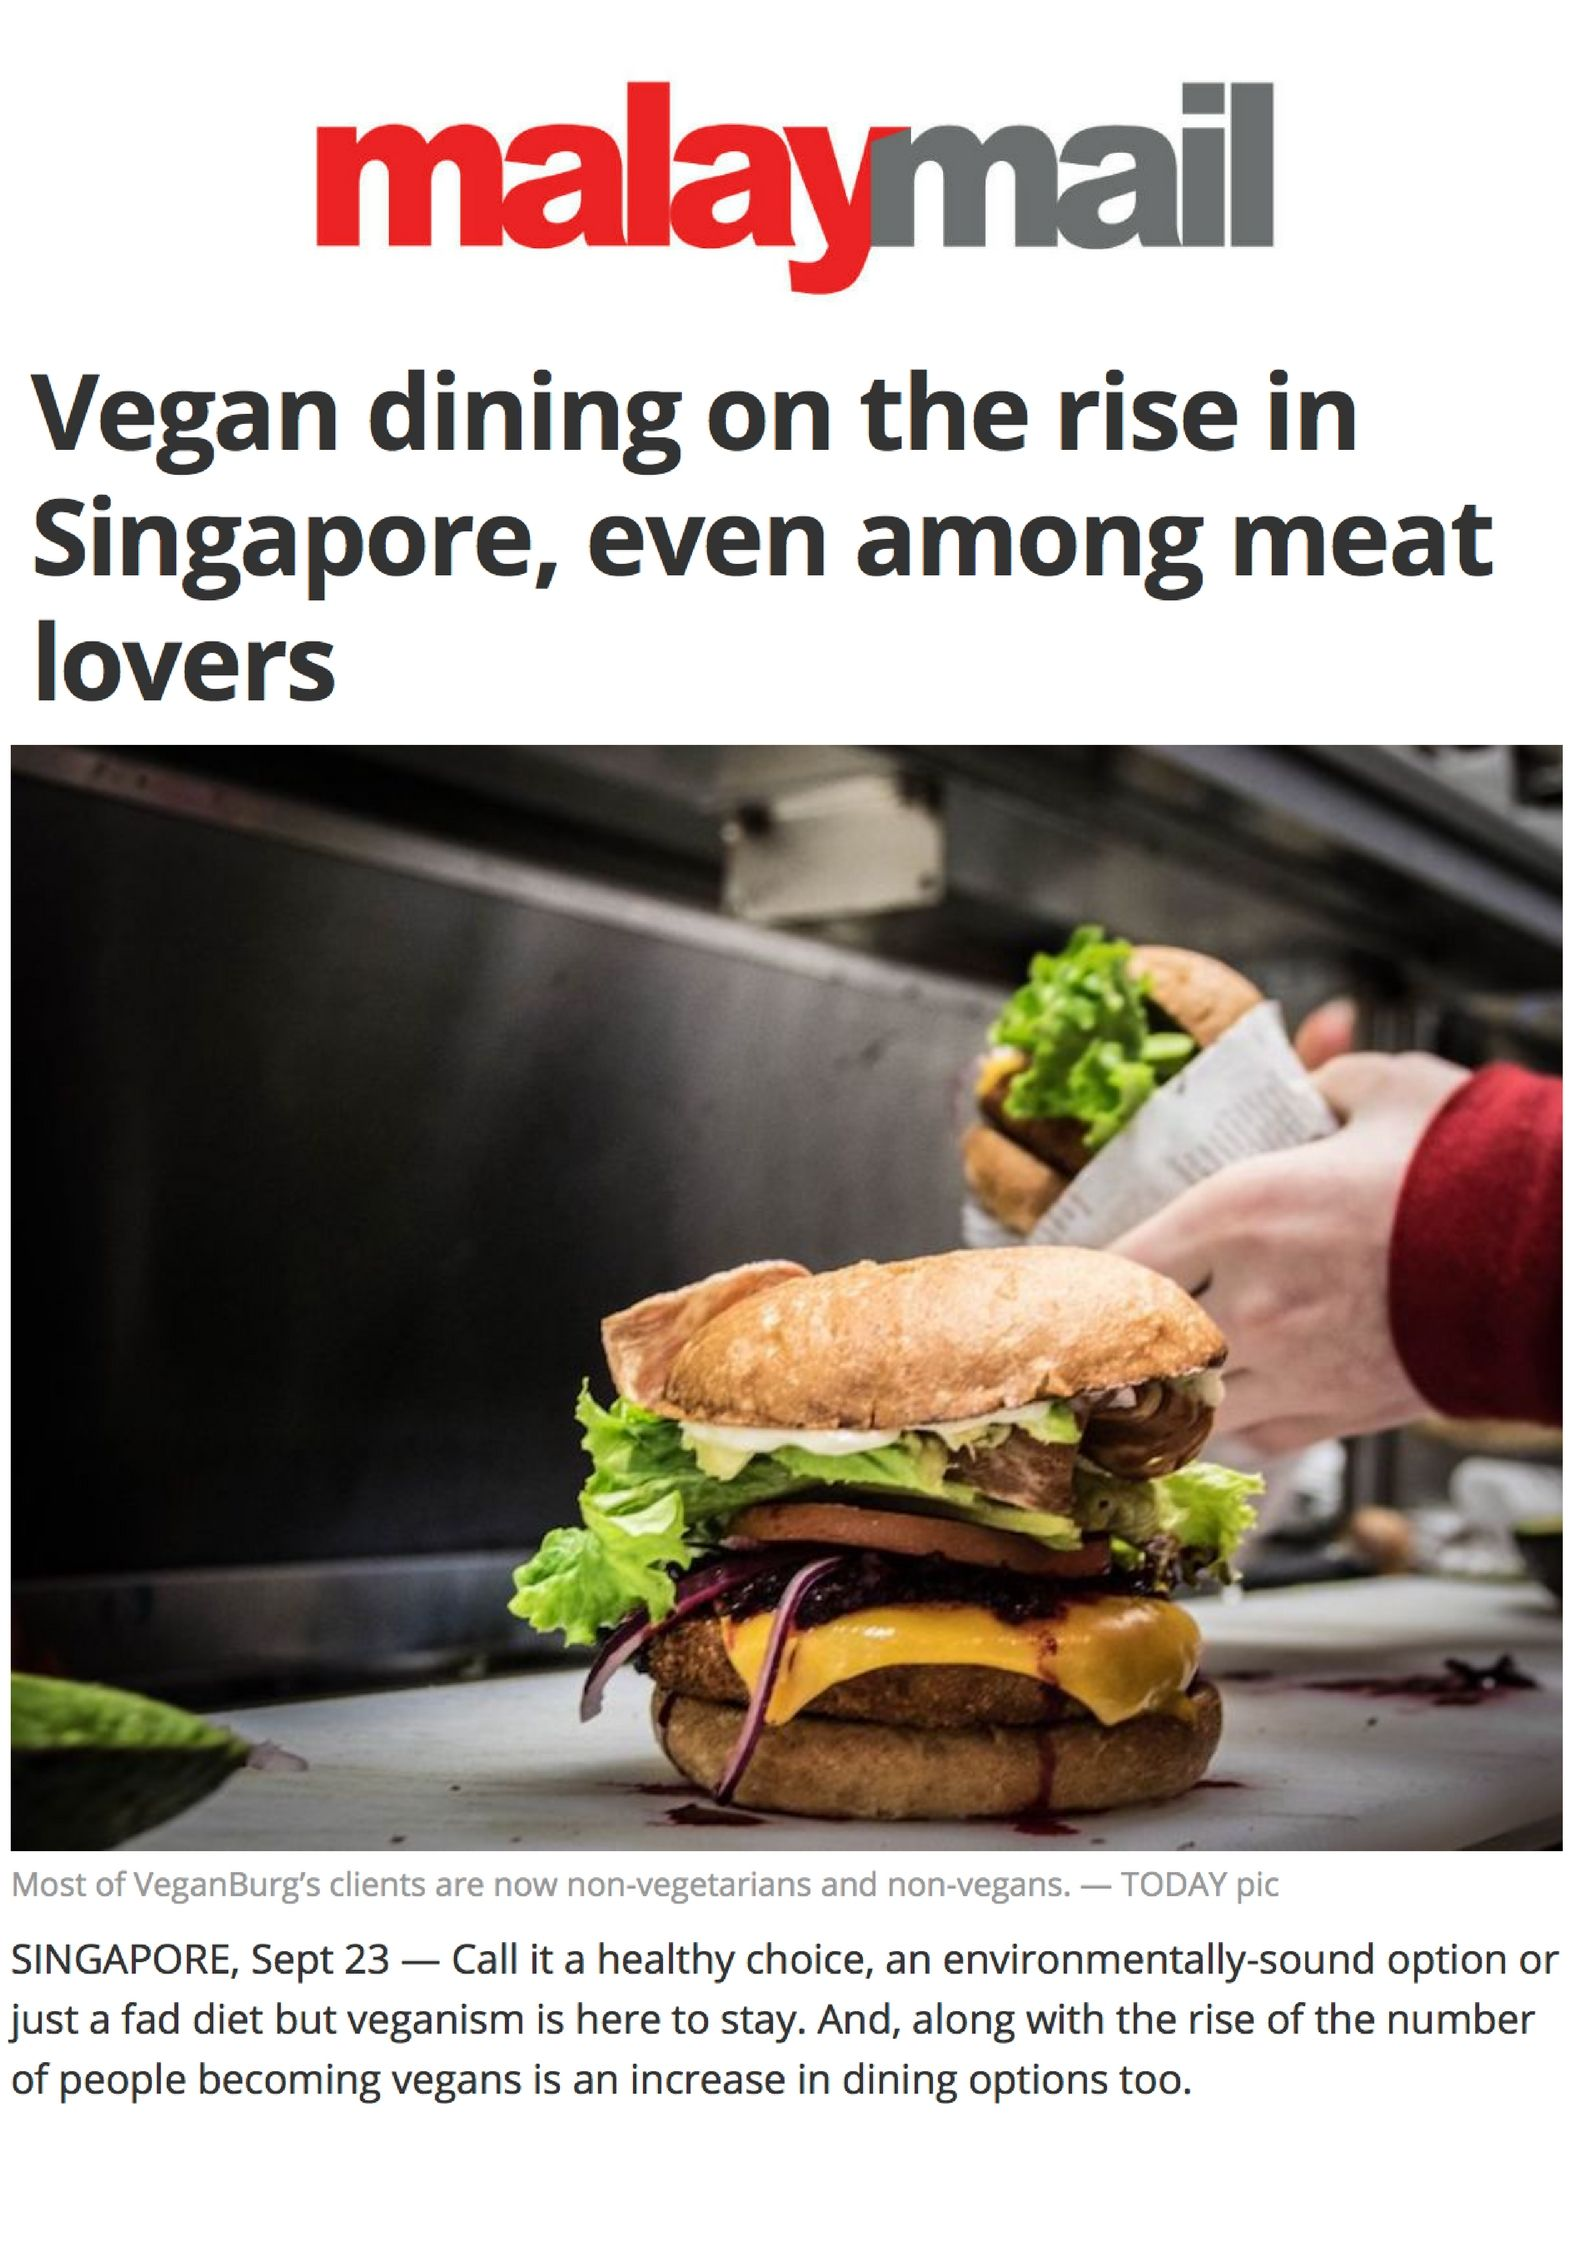 Malay Mail_ Vegan dining on the rise in Singapore, even among meat lovers.jpg